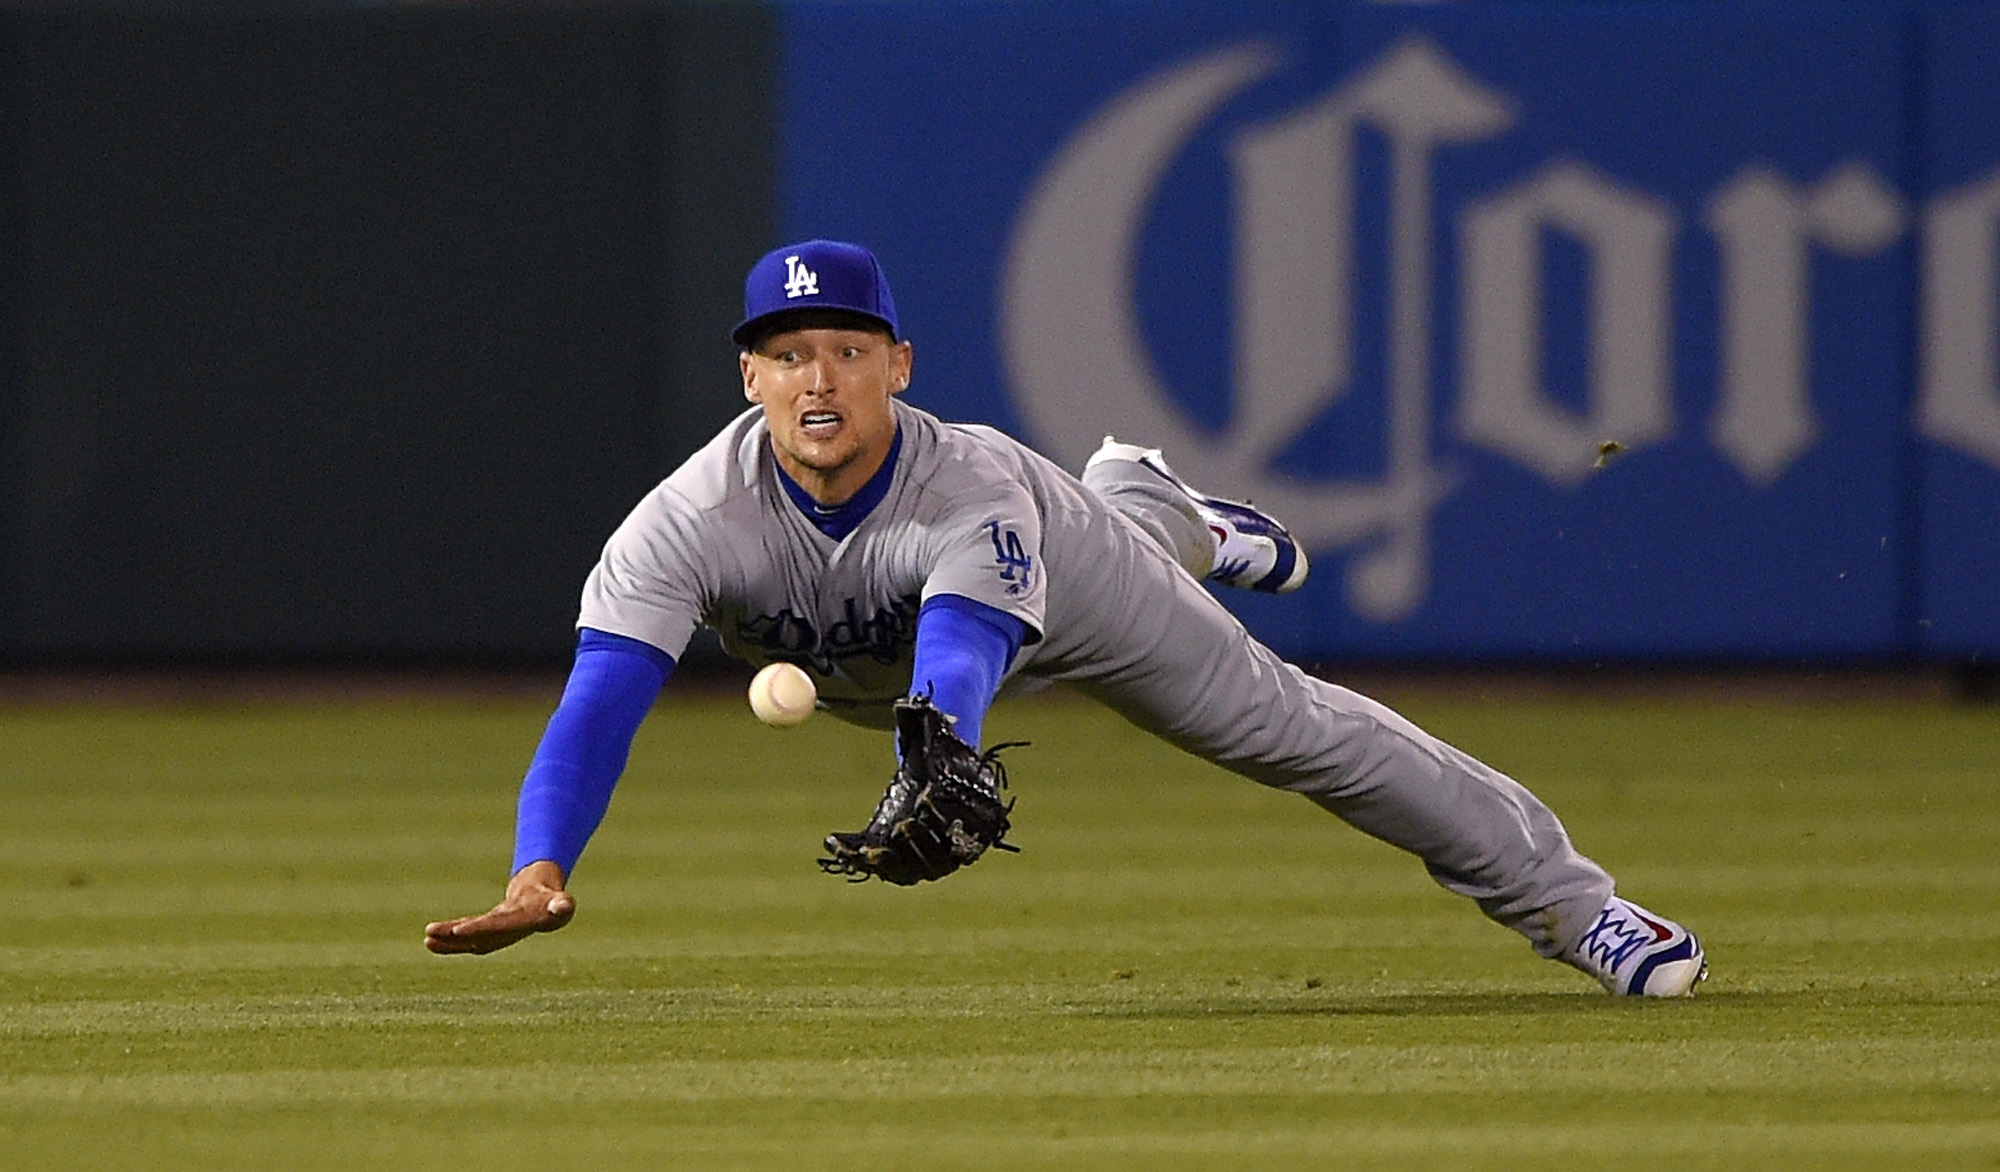 Los Angeles Dodgers left fielder Trayce Thompson can't get to a ball hit for a two-run double by Los Angeles Angels' Rafael Ortega during the fifth inning of a baseball game Wednesday, May 18, 2016, in Anaheim, Calif. (AP Photo/Mark J. Terrill)